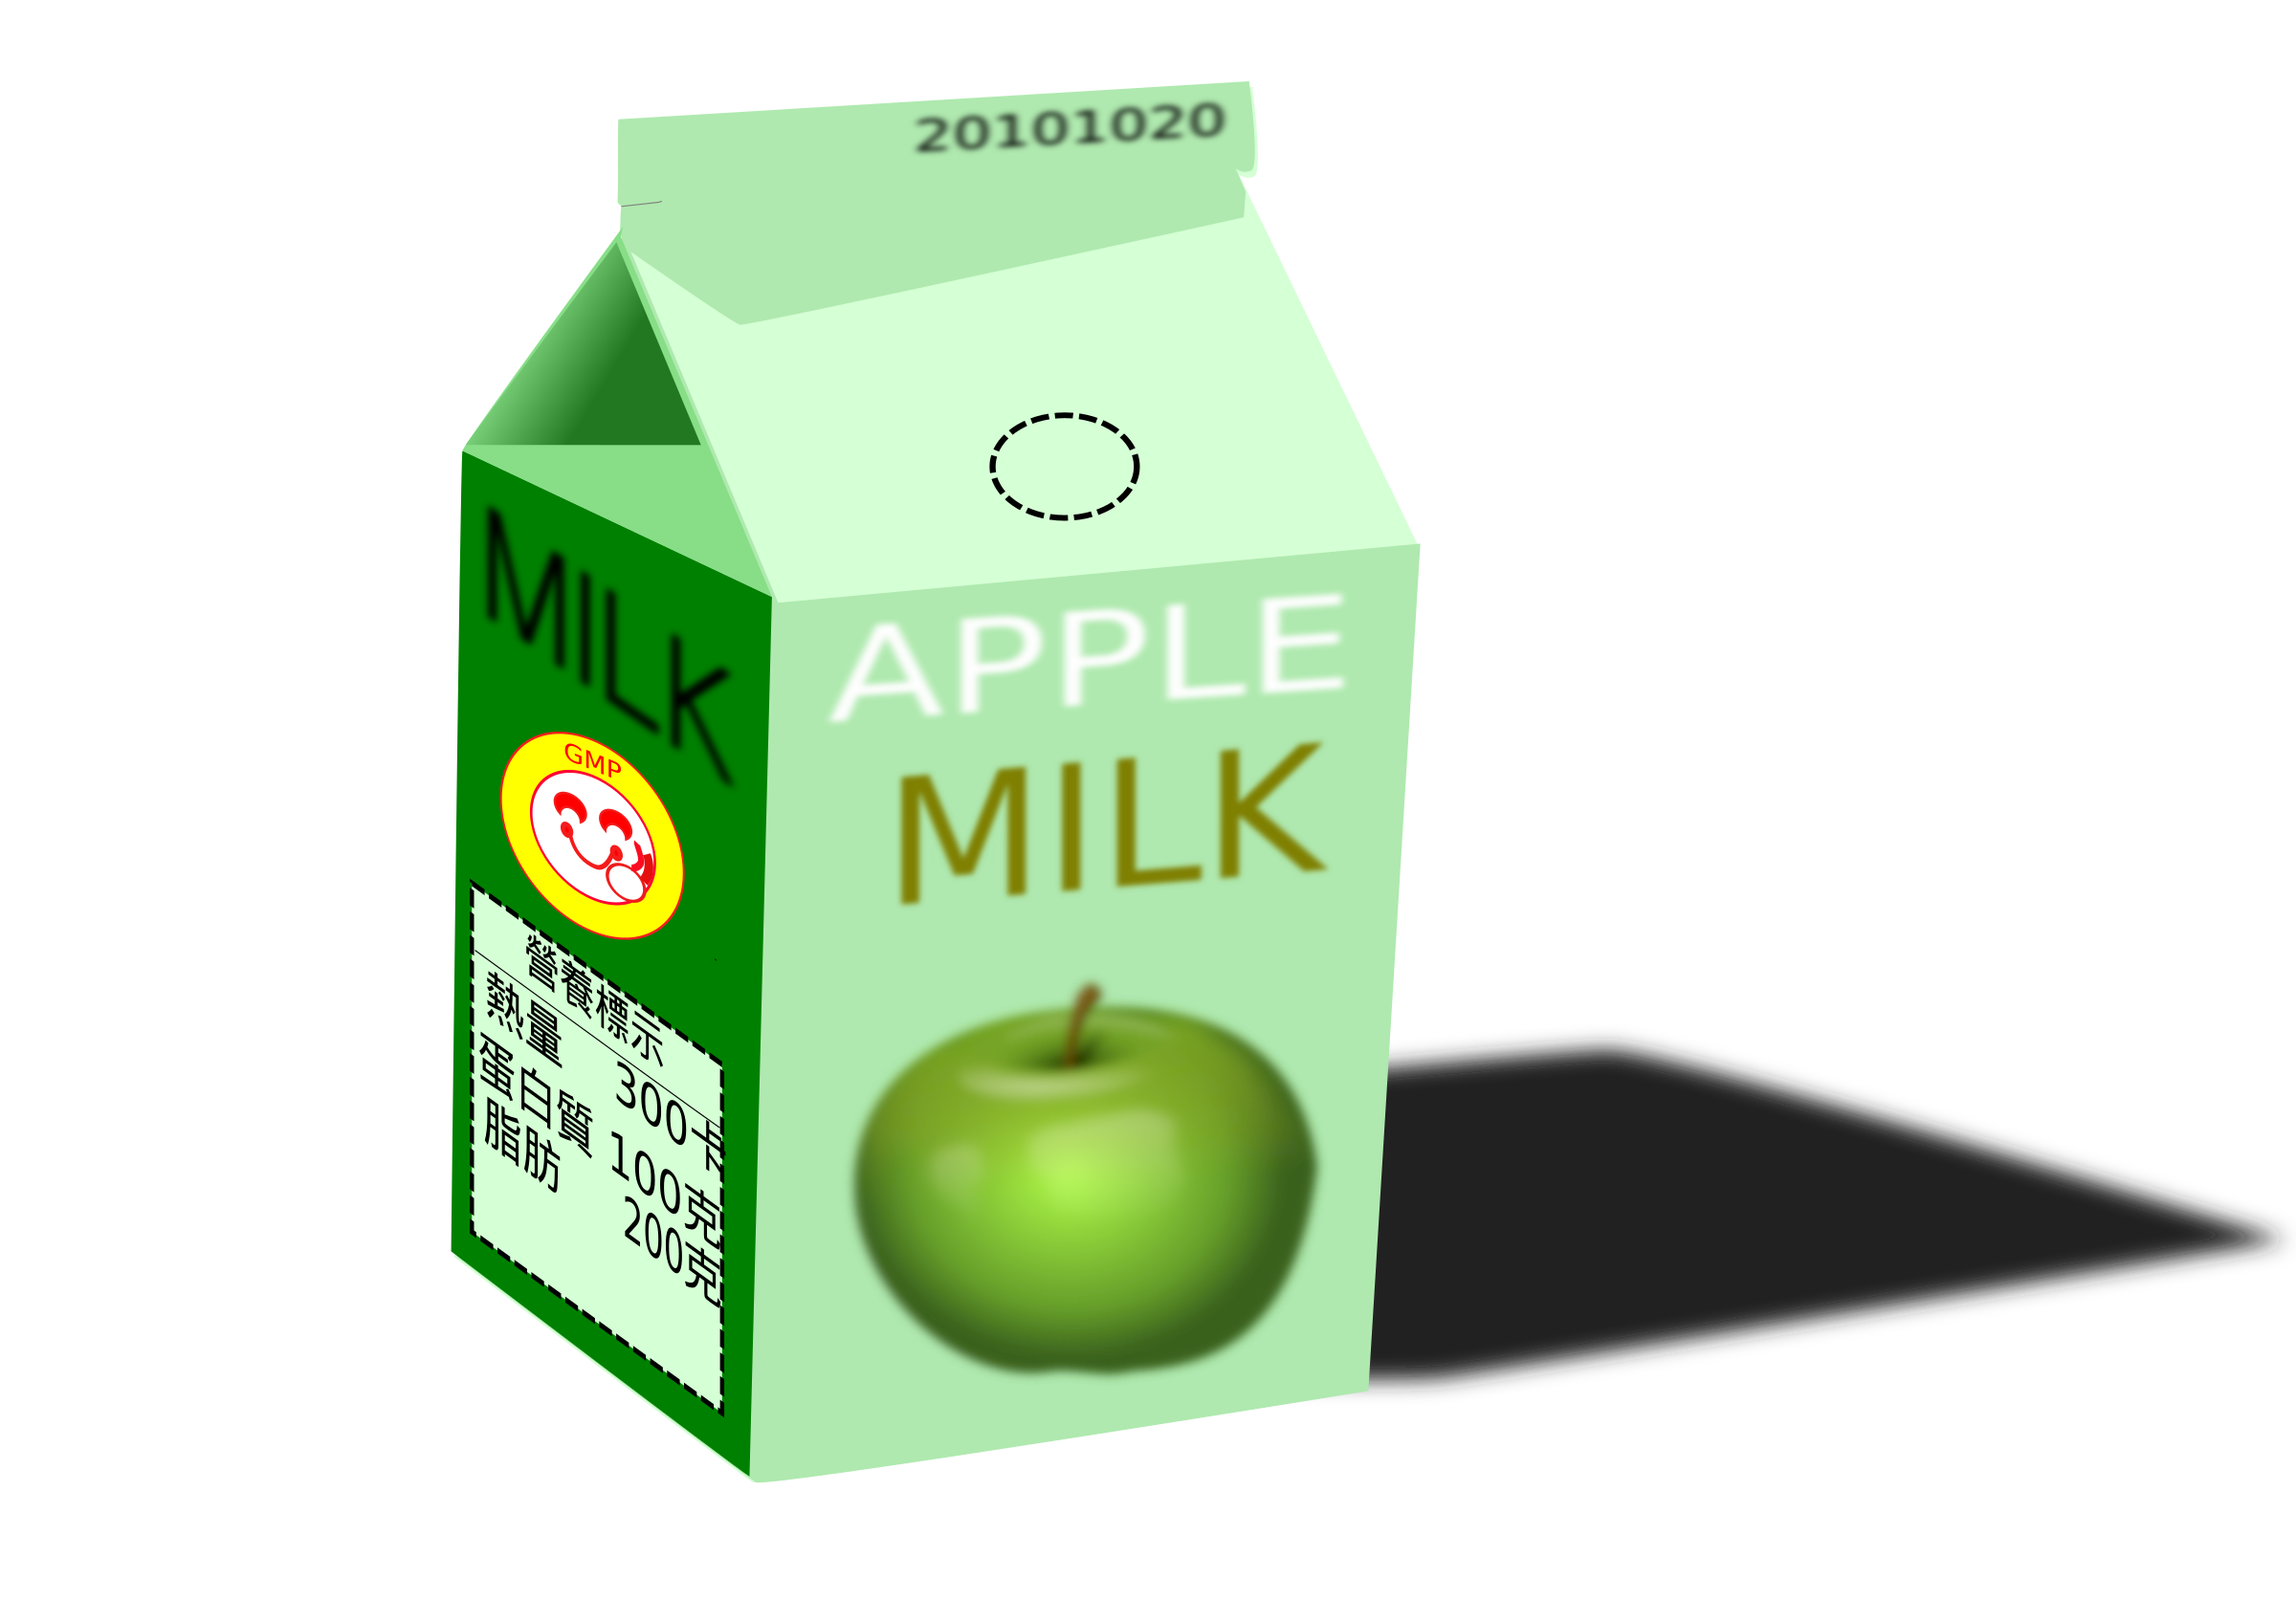 apple milk by inks046